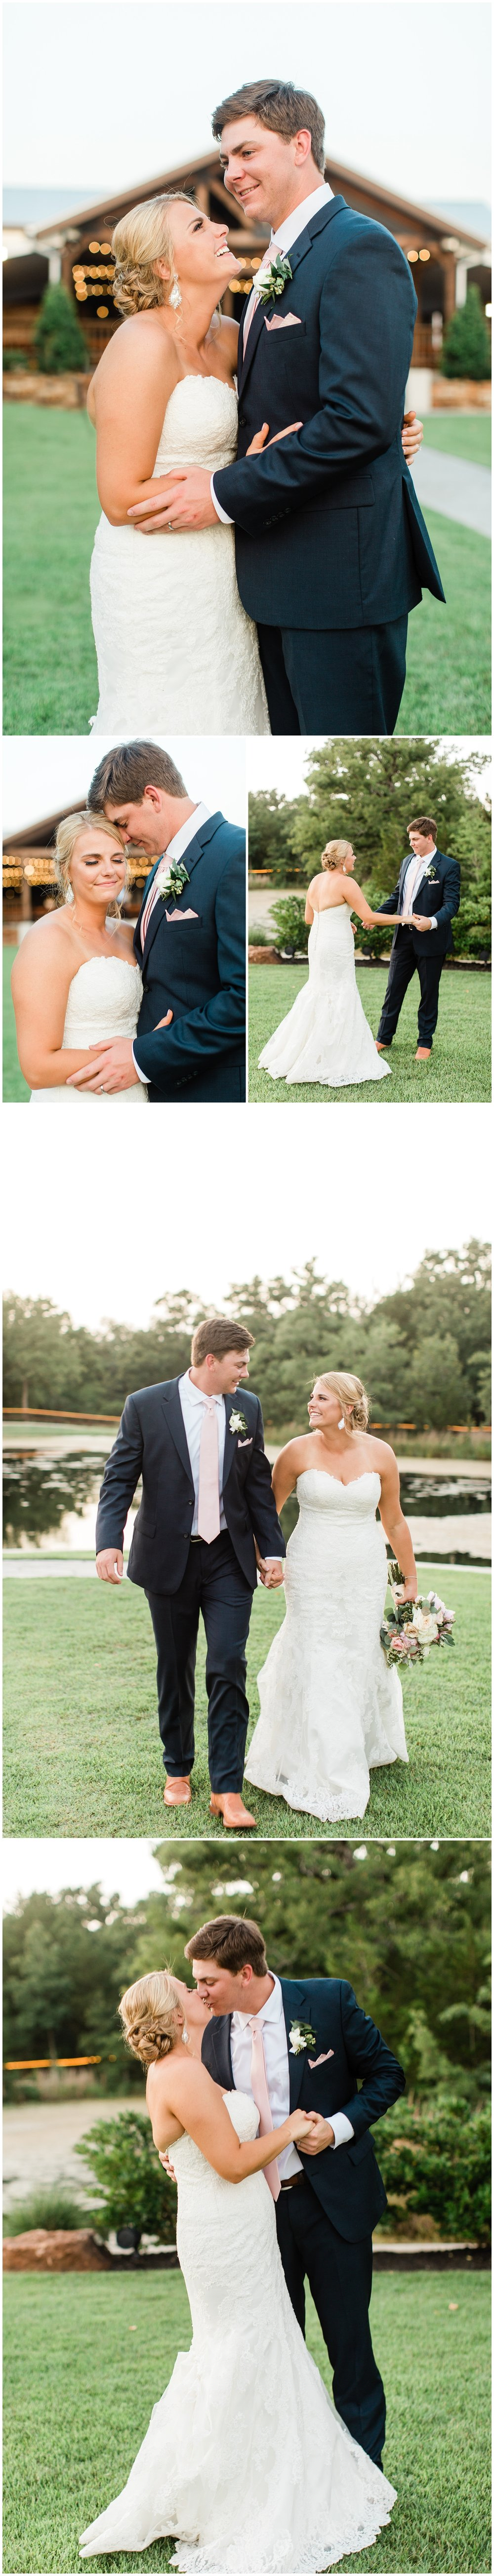 Peach_Creek_Ranch_Wedding_0034.jpg